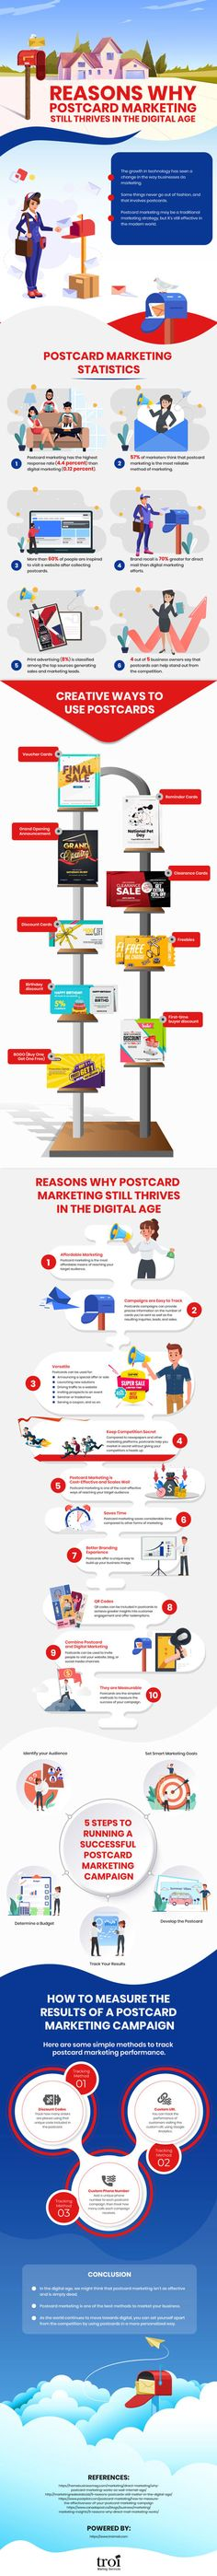 Postcard Marketing In the Digital Age [Infographic] - Best Infographics